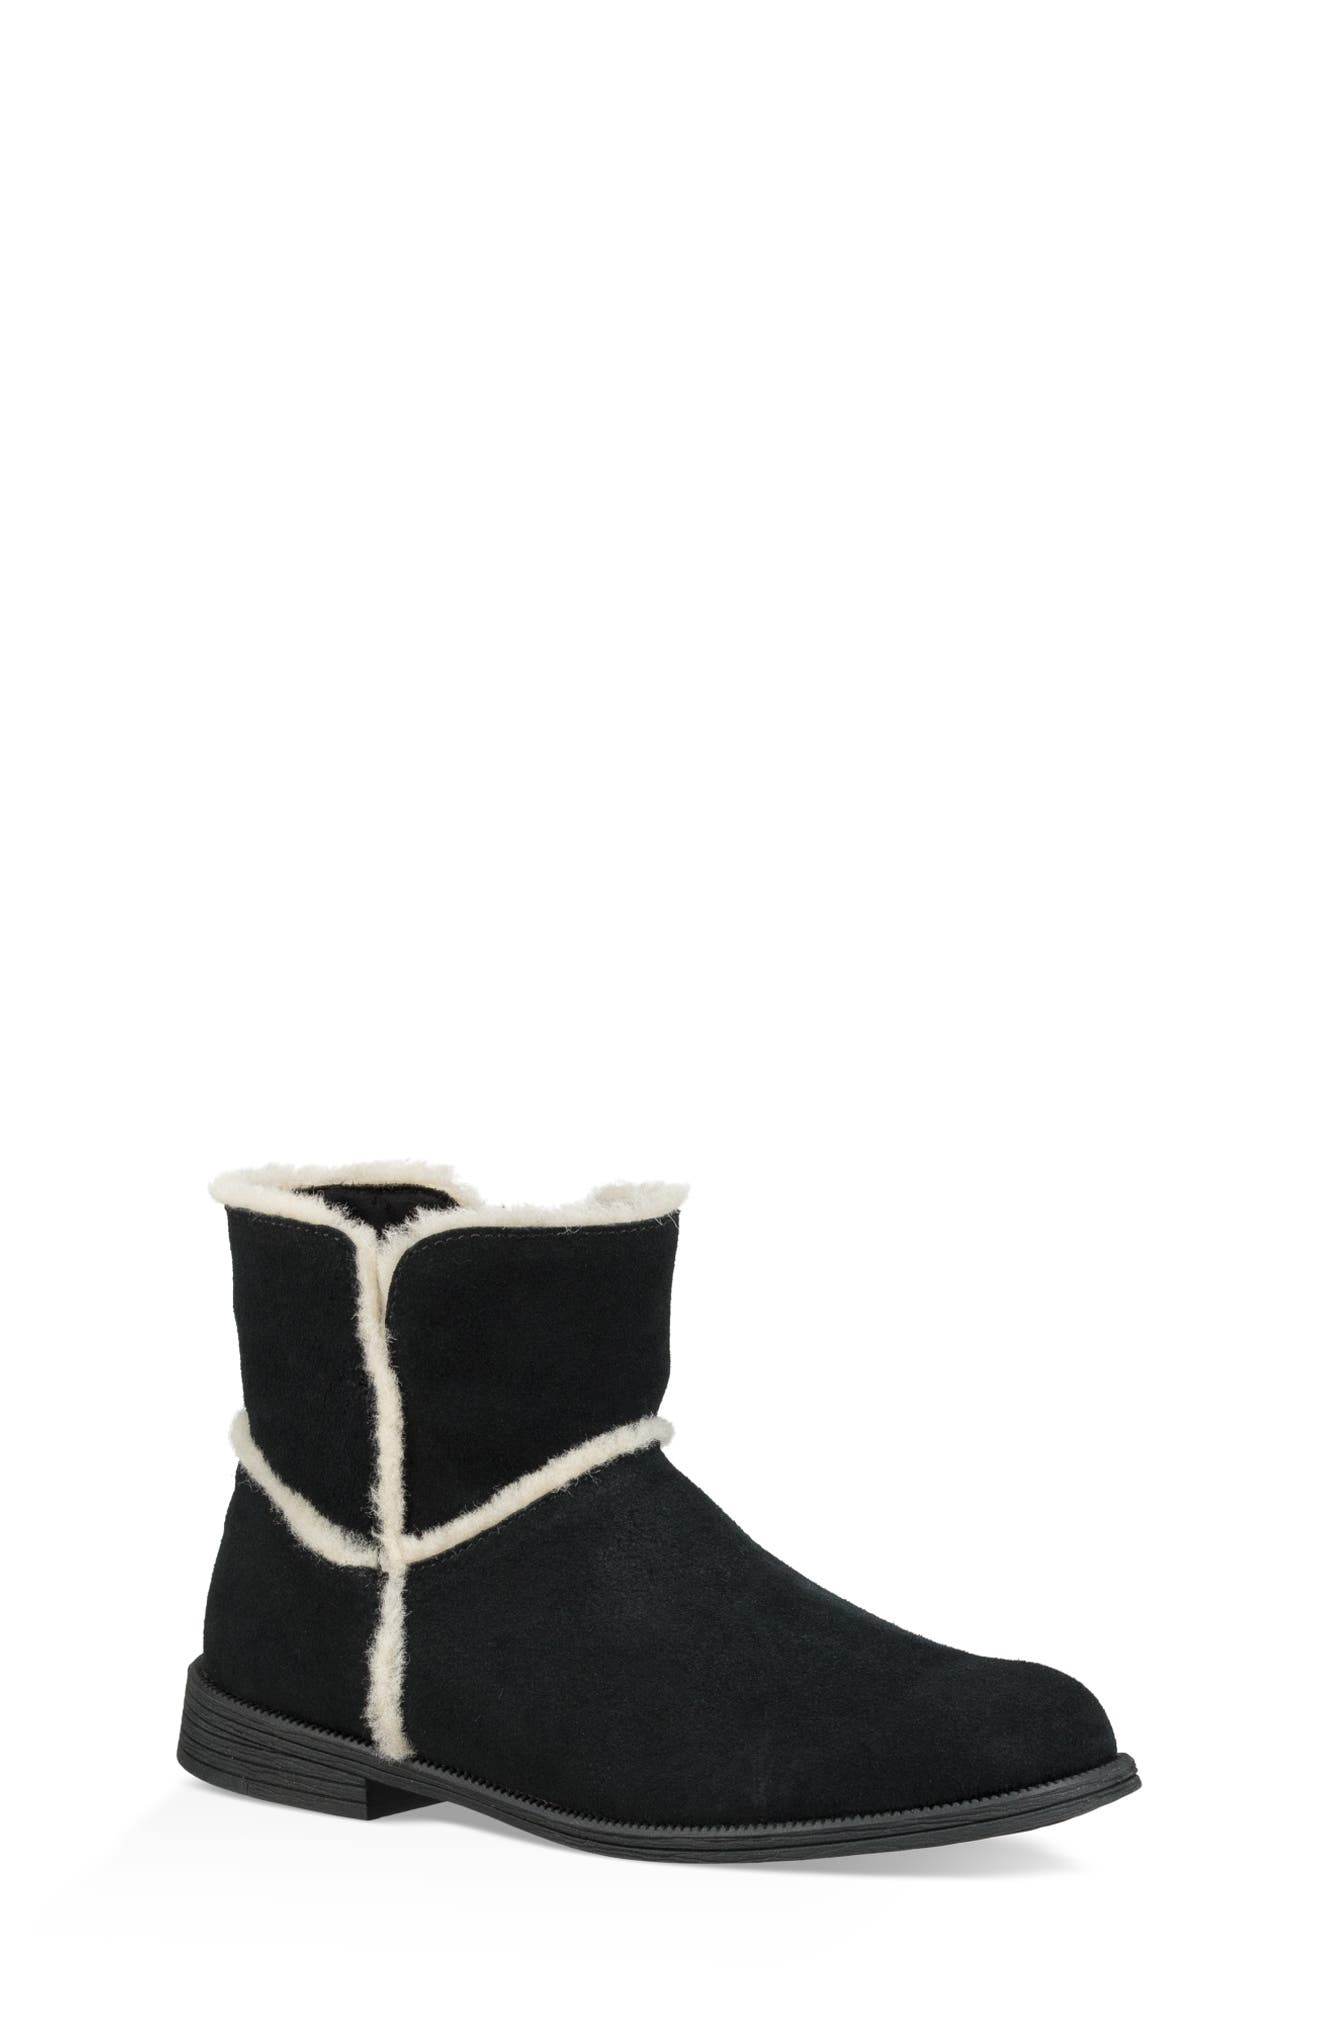 Coletta Short Boot,                         Main,                         color, BLACK